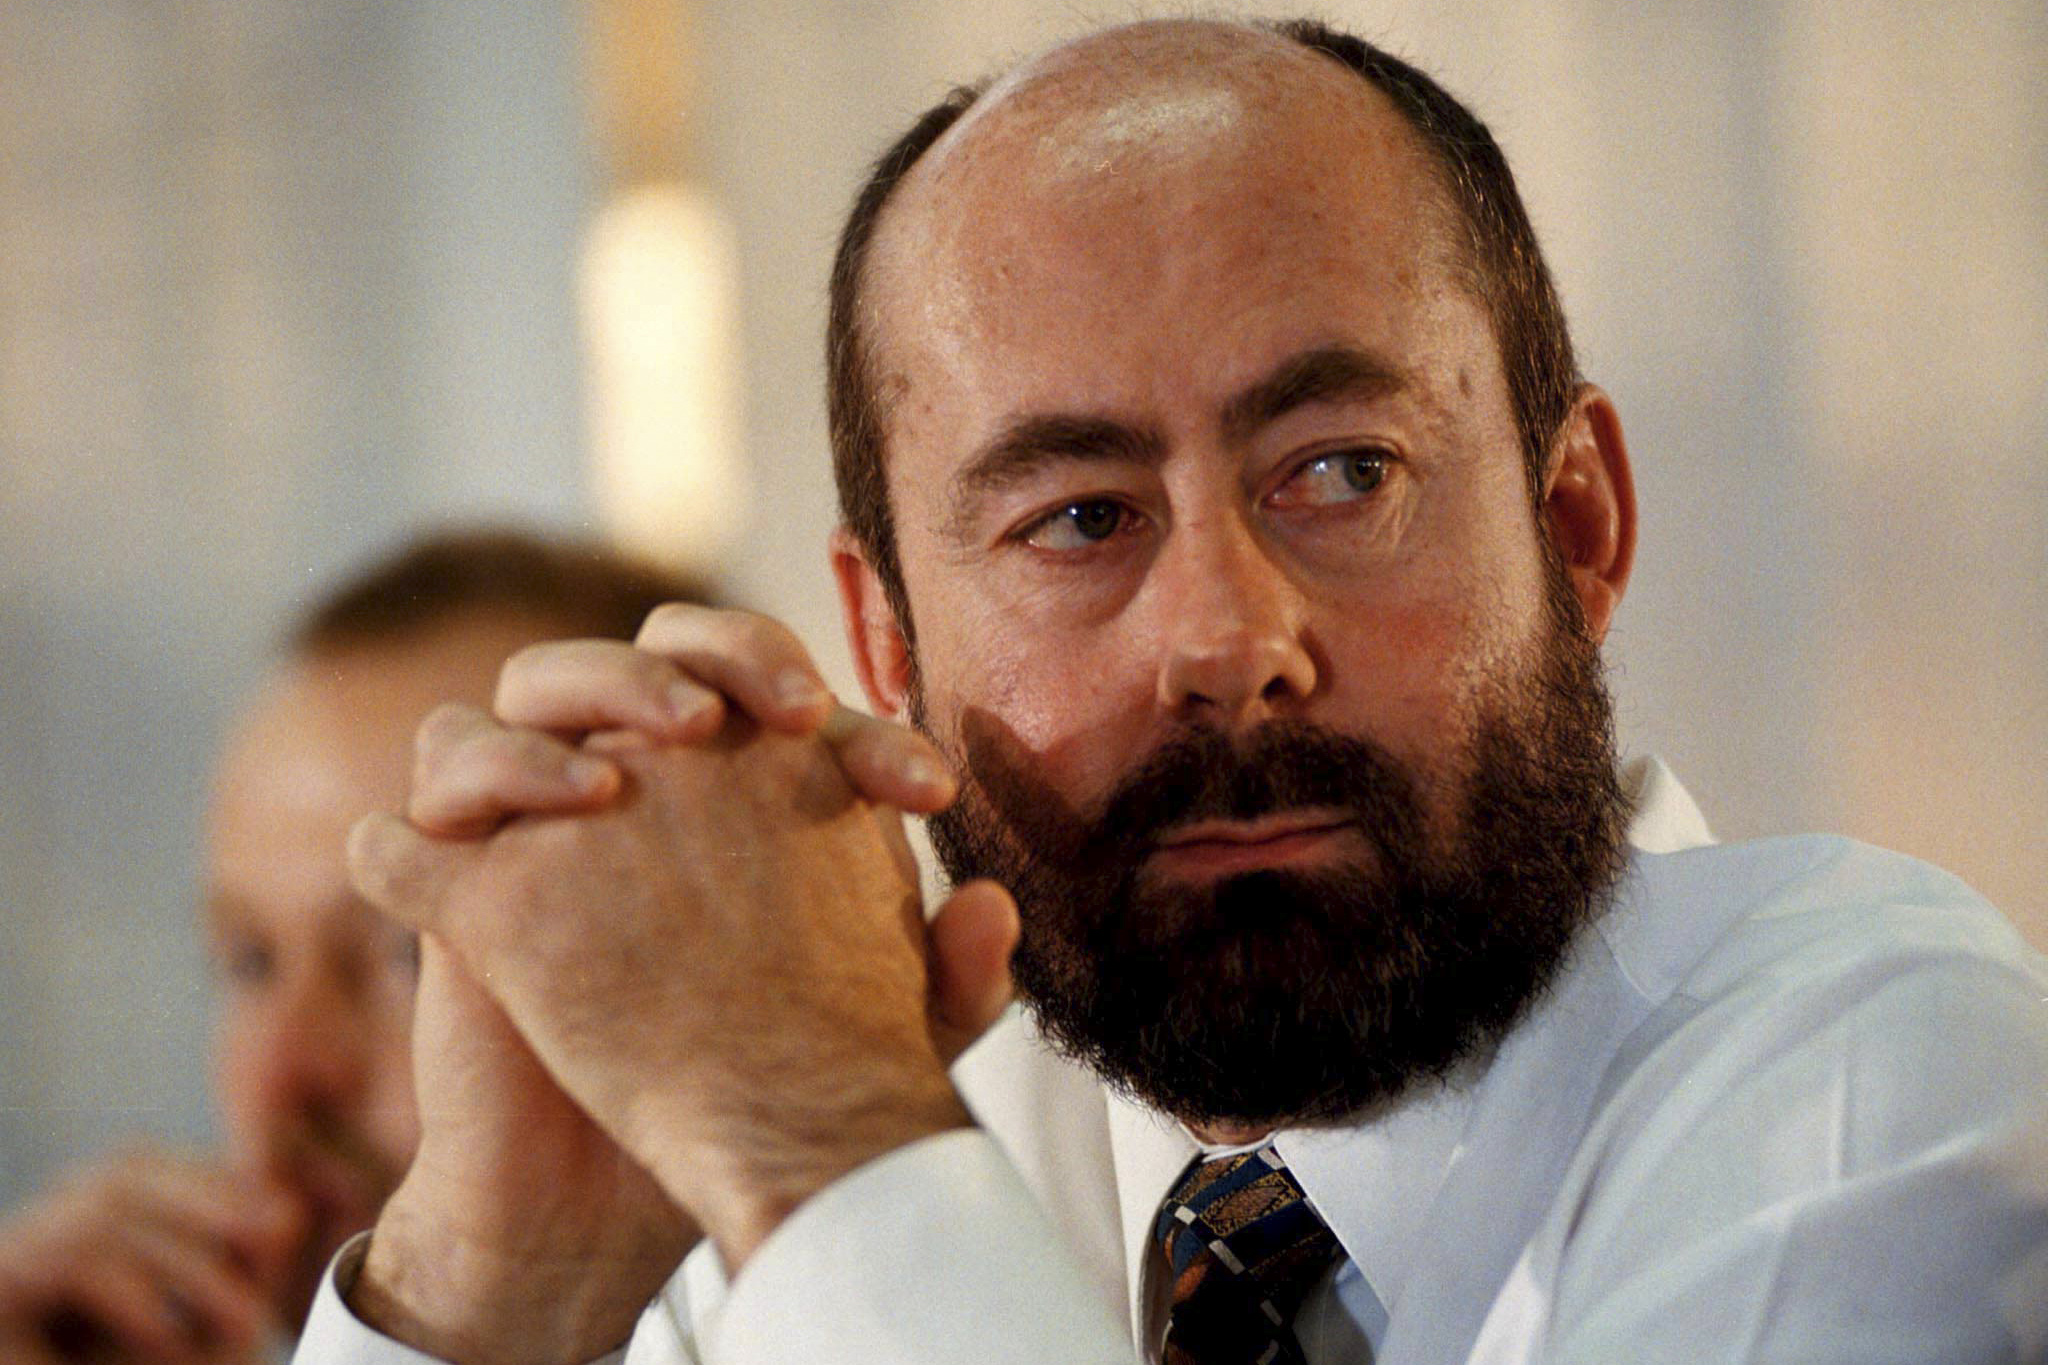 31 July 1998: Wouter Basson, the head of the apartheid government's chemical and biological weapons programme, during his testimony at the Truth and Reconciliation Commission in Cape Town. (Photograph by Reuters)